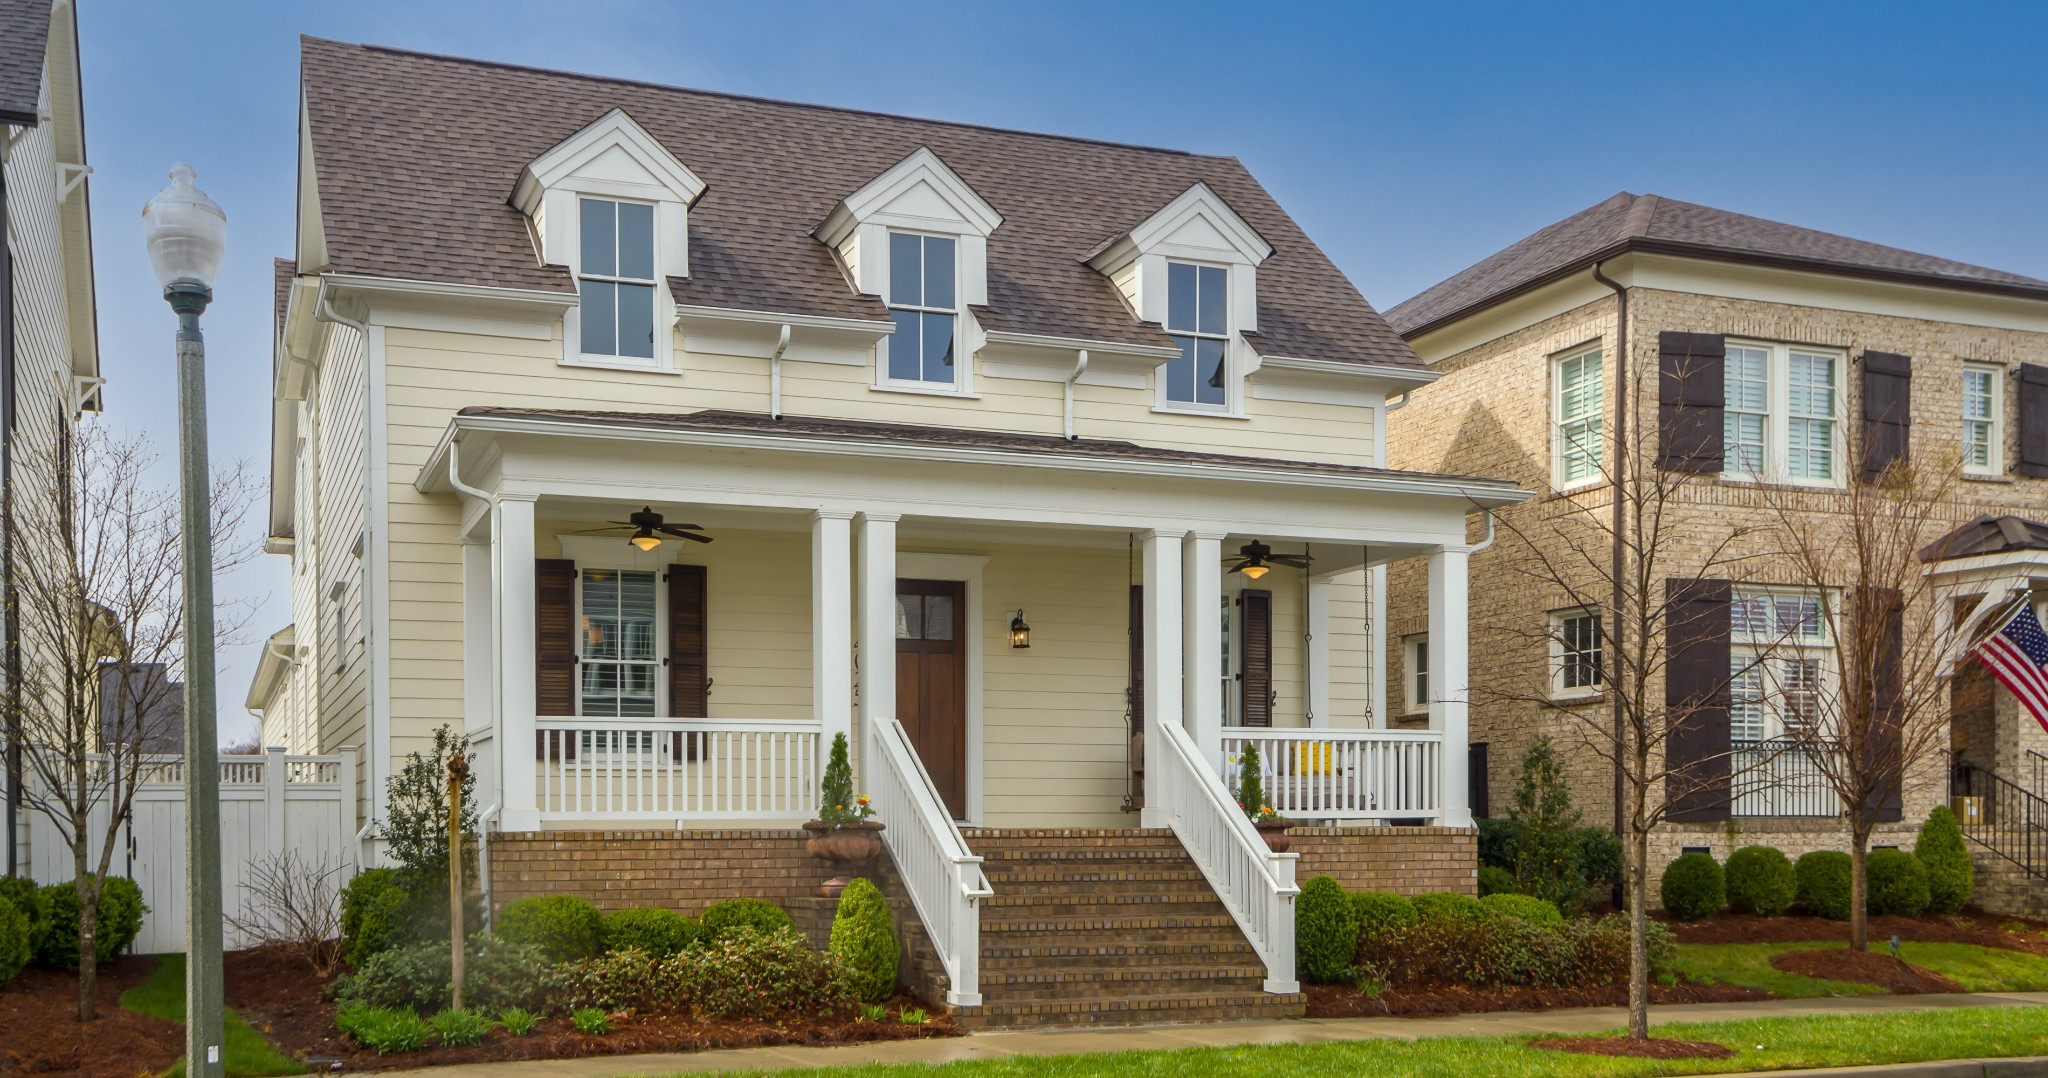 Berry Farms Town Center Se Real Estate Listings Main Image